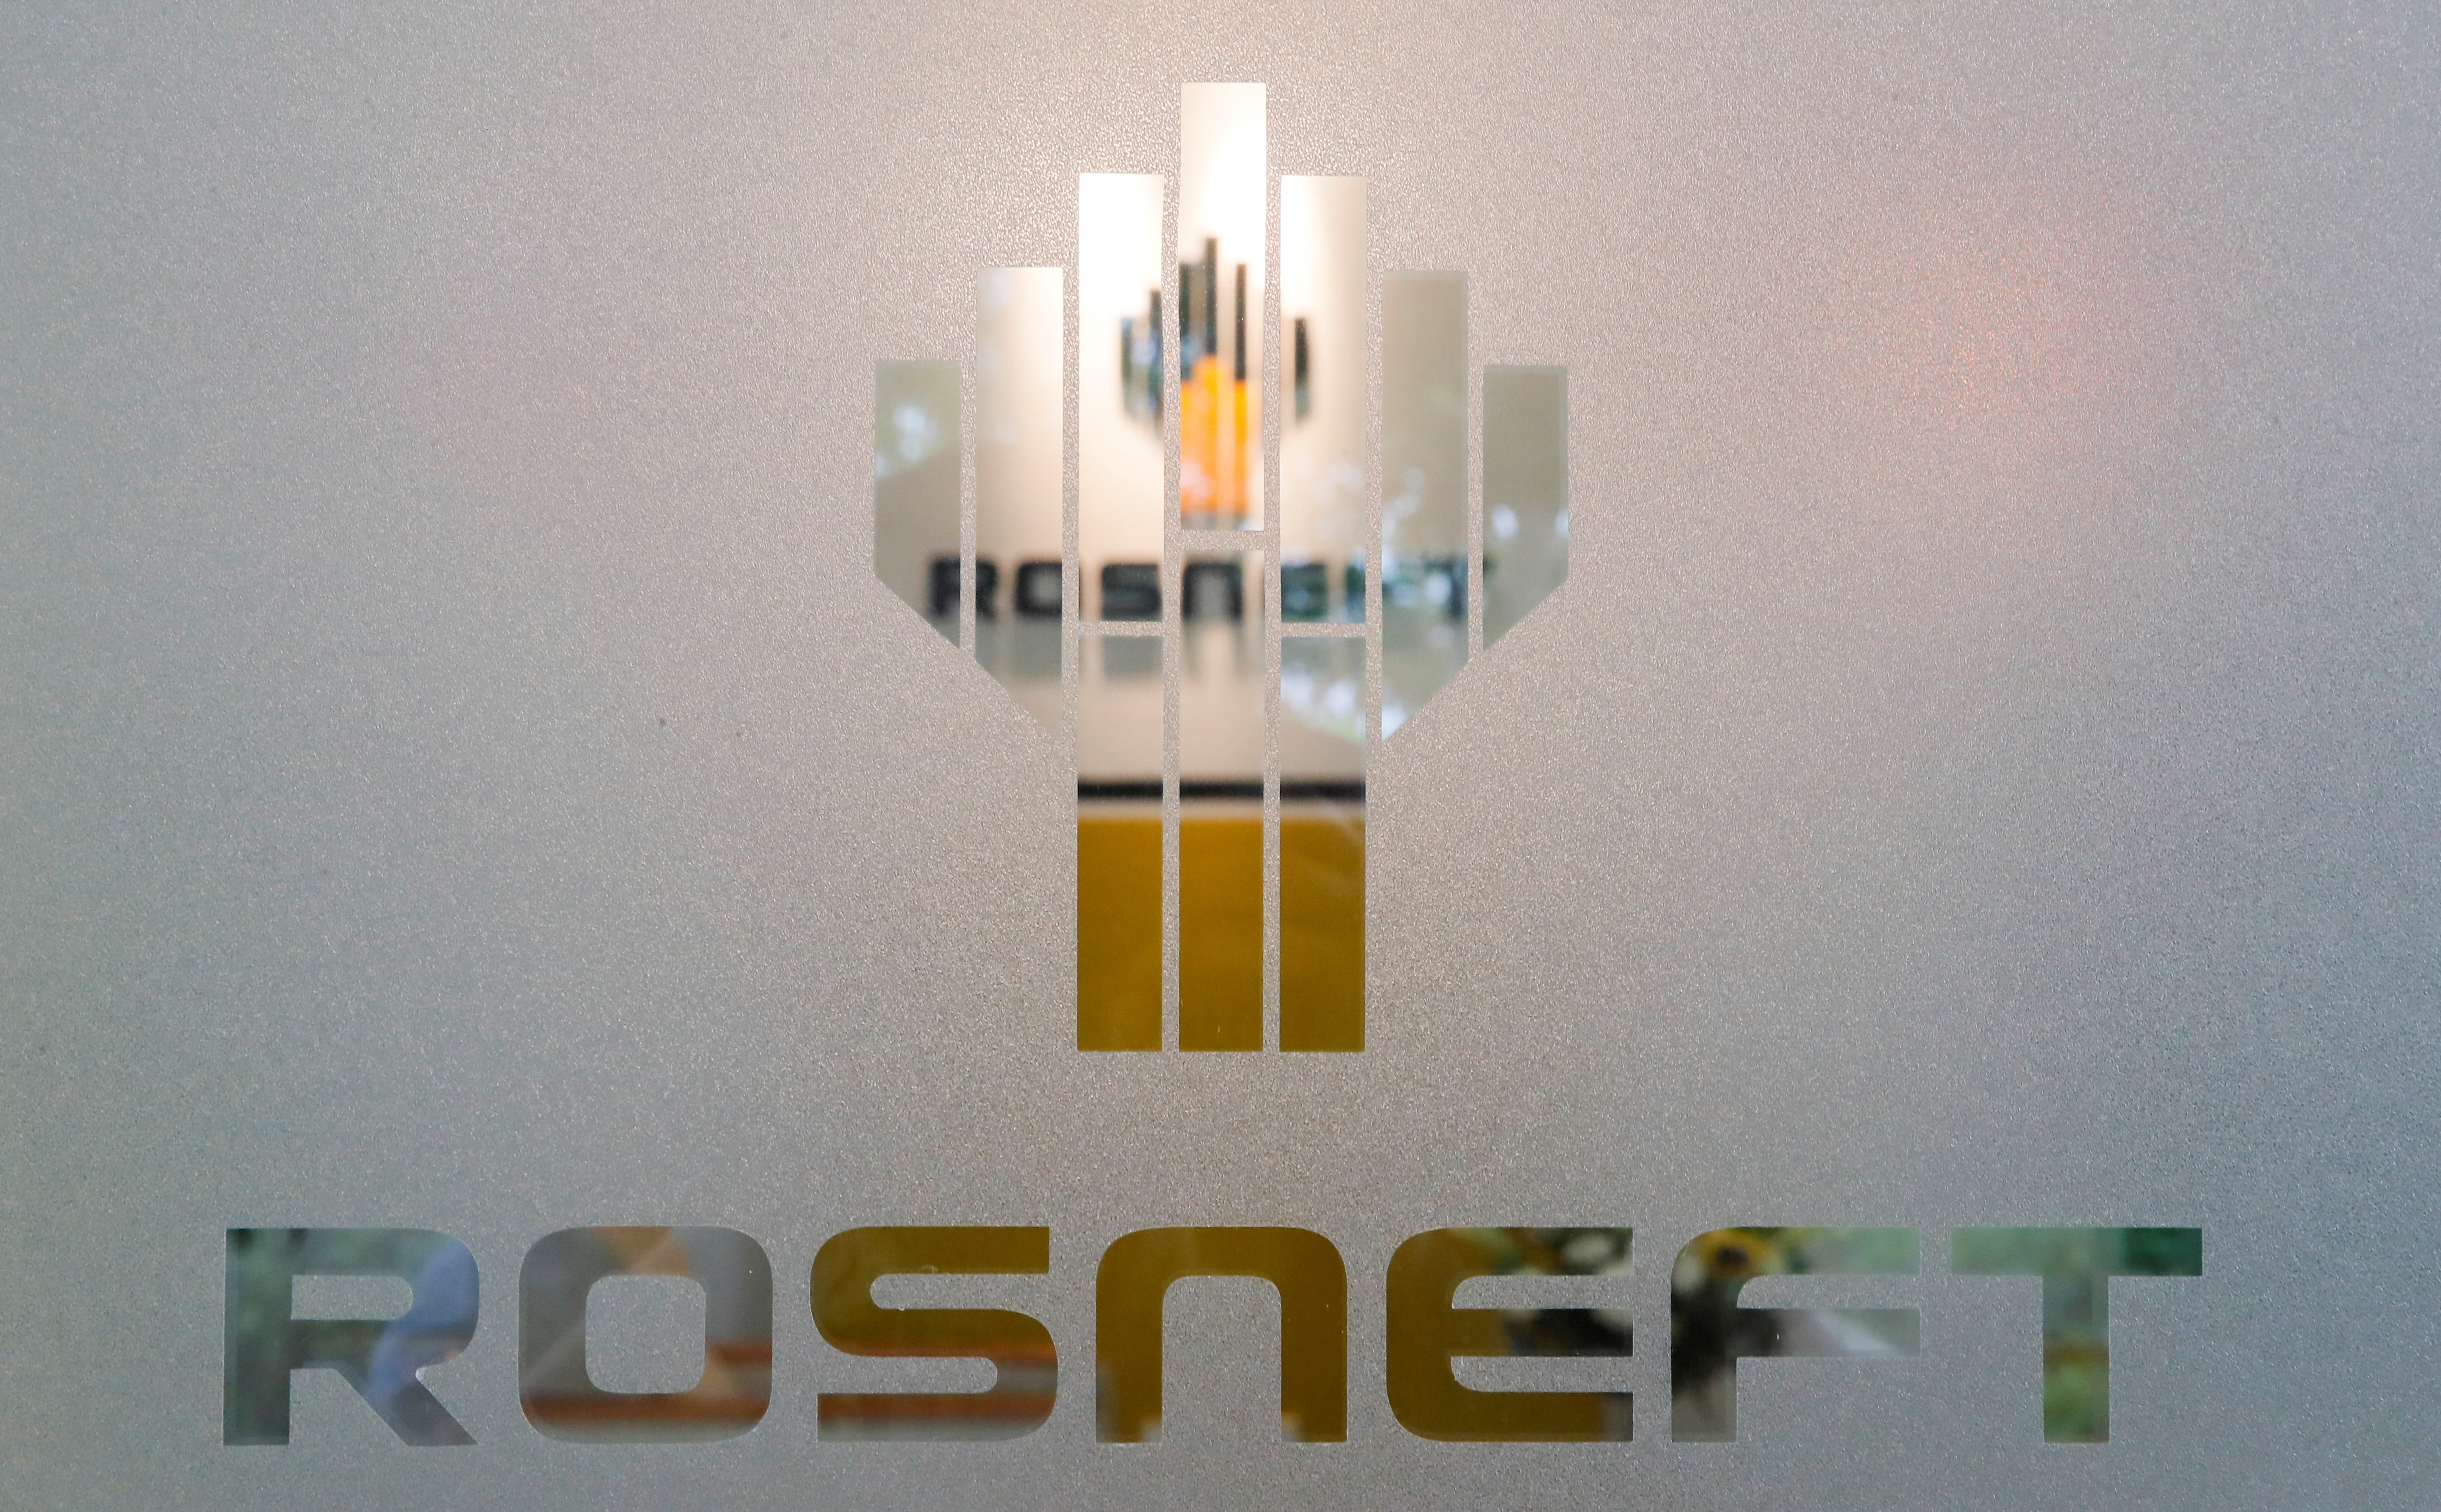 The logo of Russia's oil company Rosneft is pictured at the Rosneft Vietnam office in Ho Chi Minh City, Vietnam April 26, 2018. REUTERS/Maxim Shemetov/File Photo